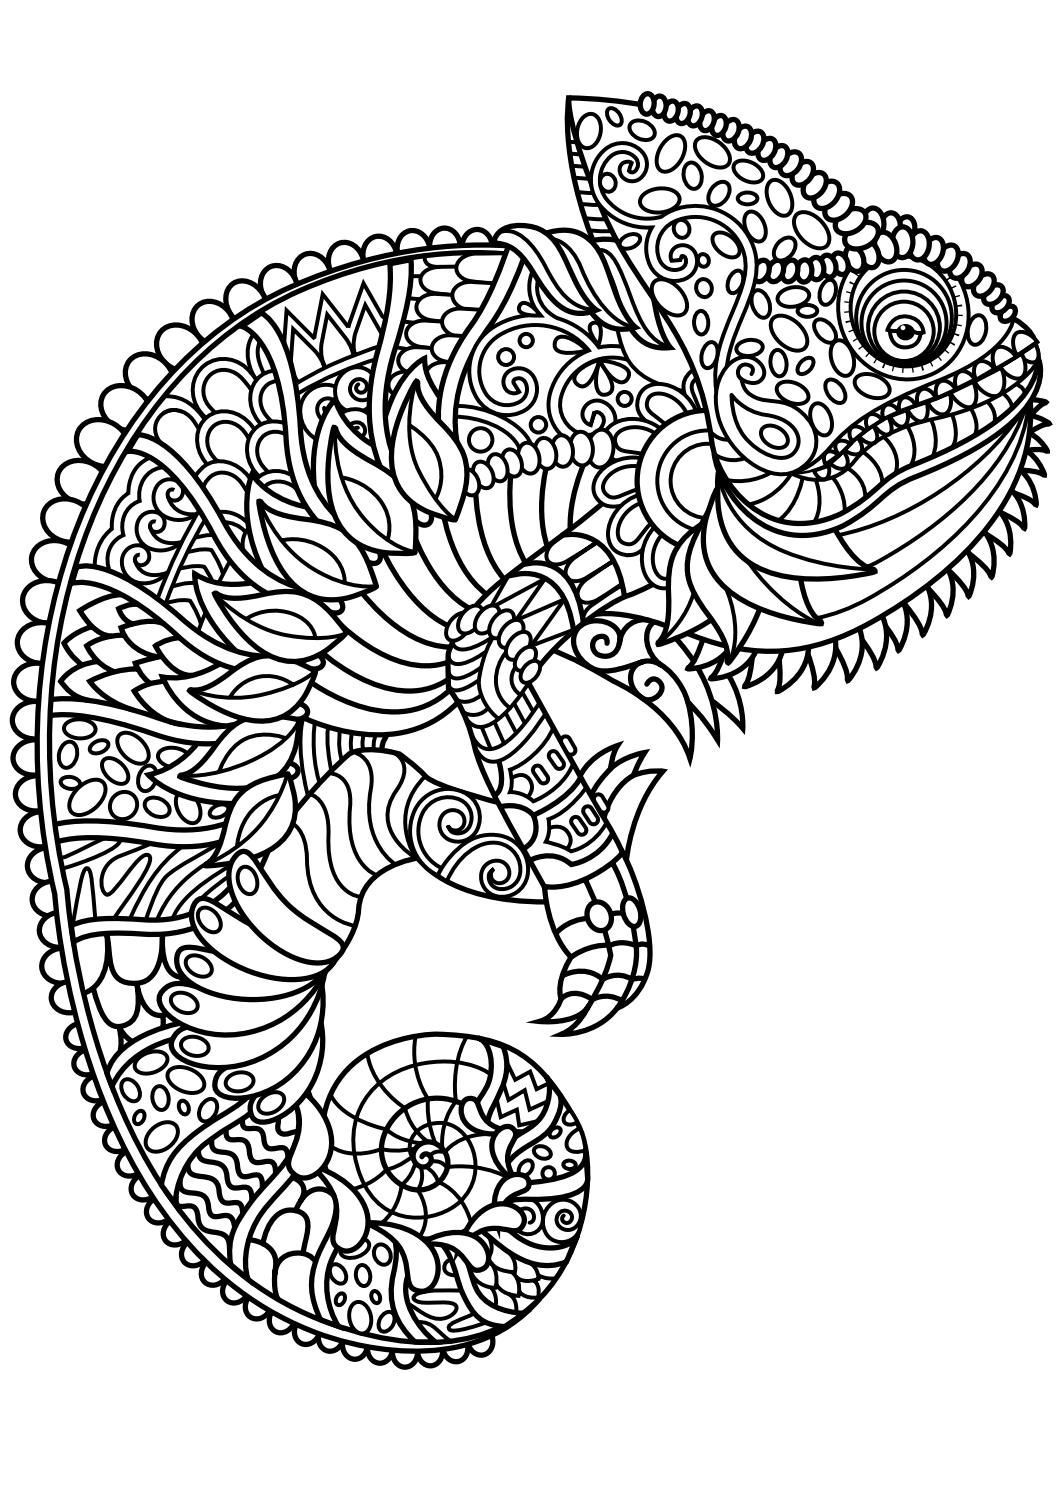 Animal Coloring Pages Pdf Free Adult Coloring Pages Elephant